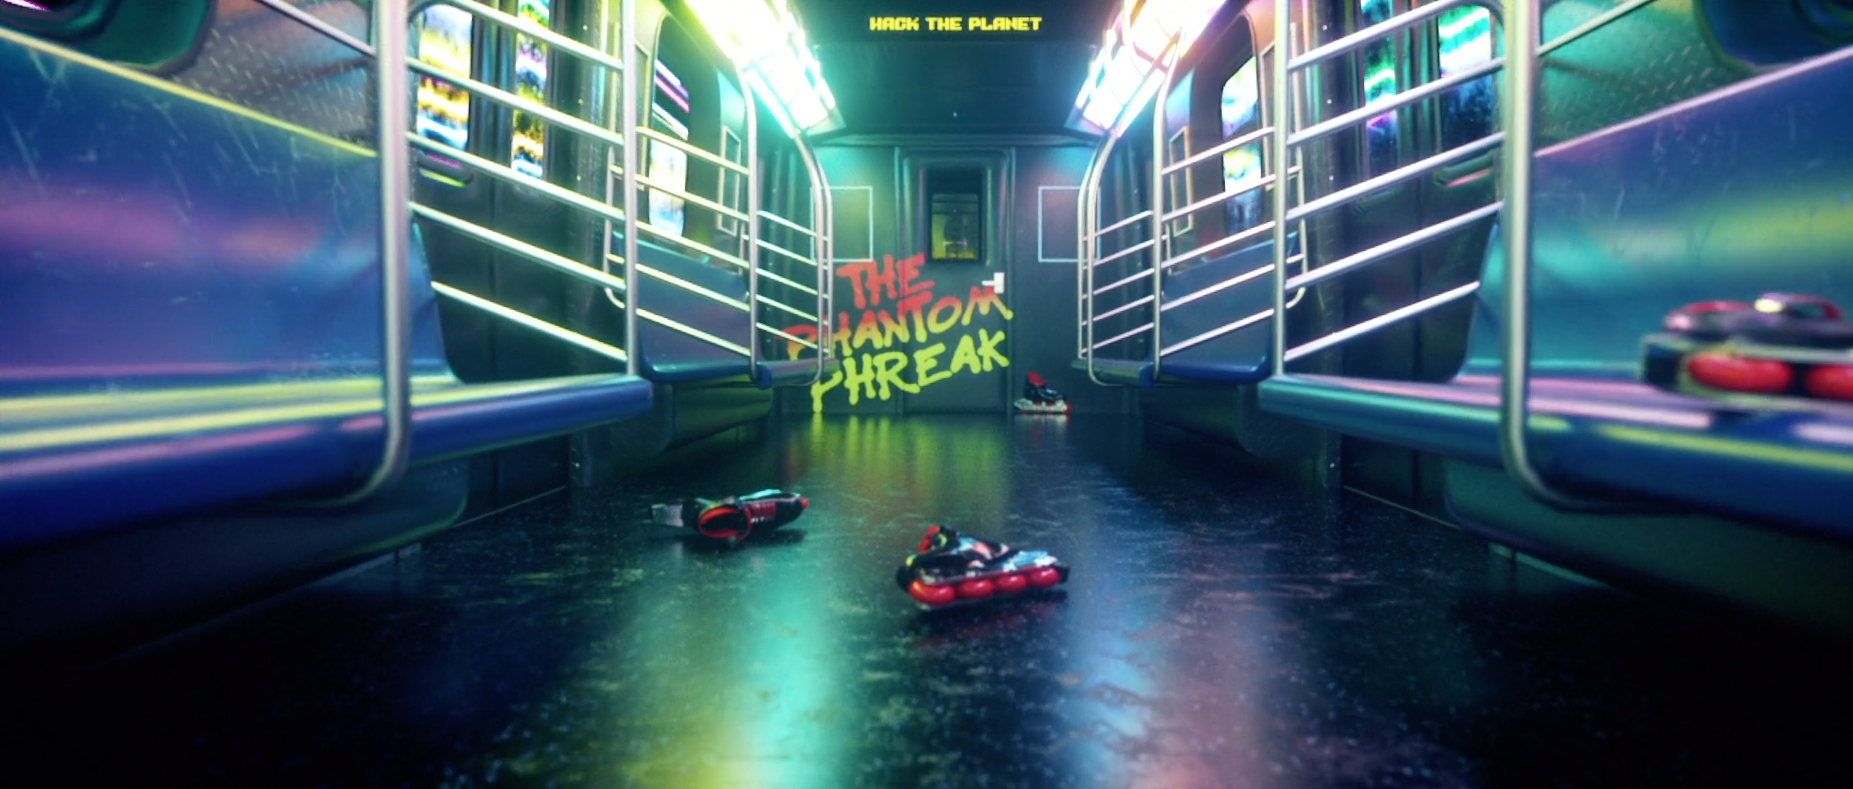 3D Animation Recreates The Title Sequence Of 90s Cult Classic